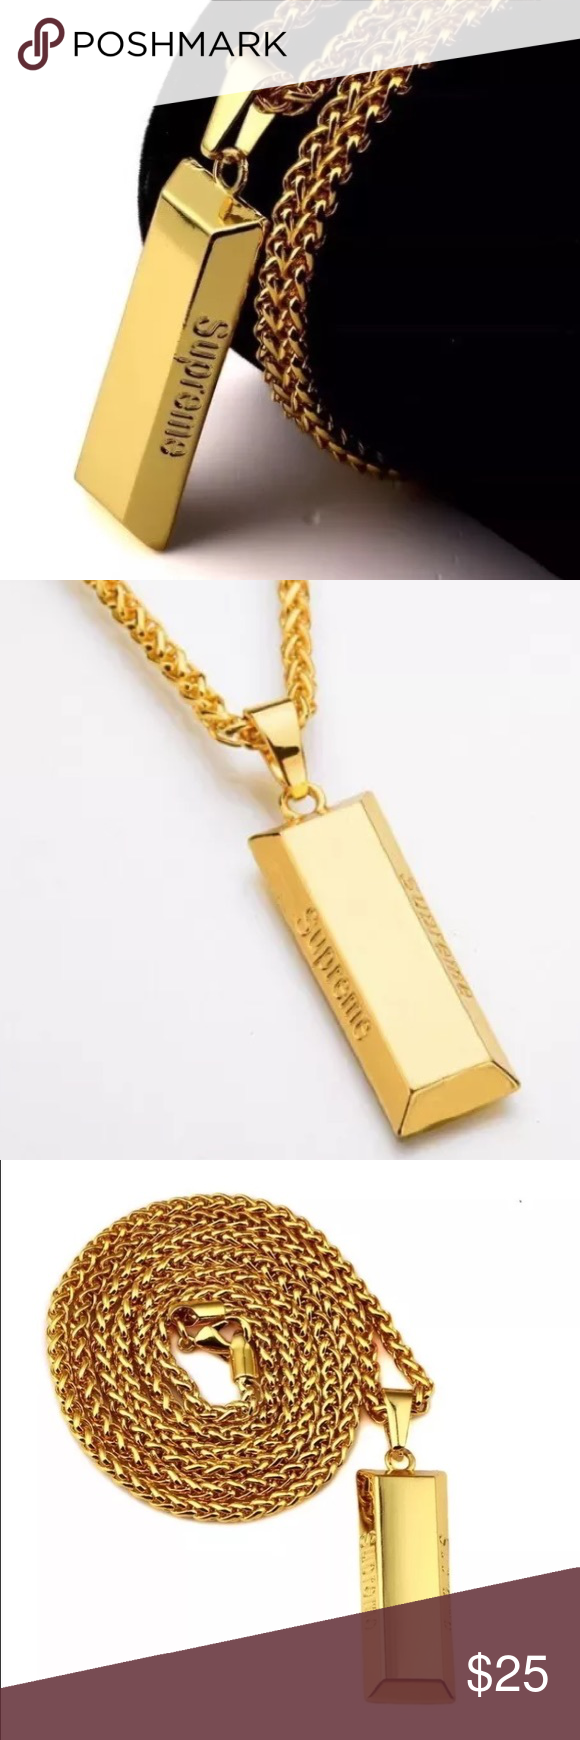 SUPREME Gold Bar Brick Necklace 18K Plated Supreme Gold Bar Brick Necklace 18K Plated. High quality reproduction. Unisex! Feel free to comment with questions and send offers my way! No trades. Supreme Accessories Jewelry